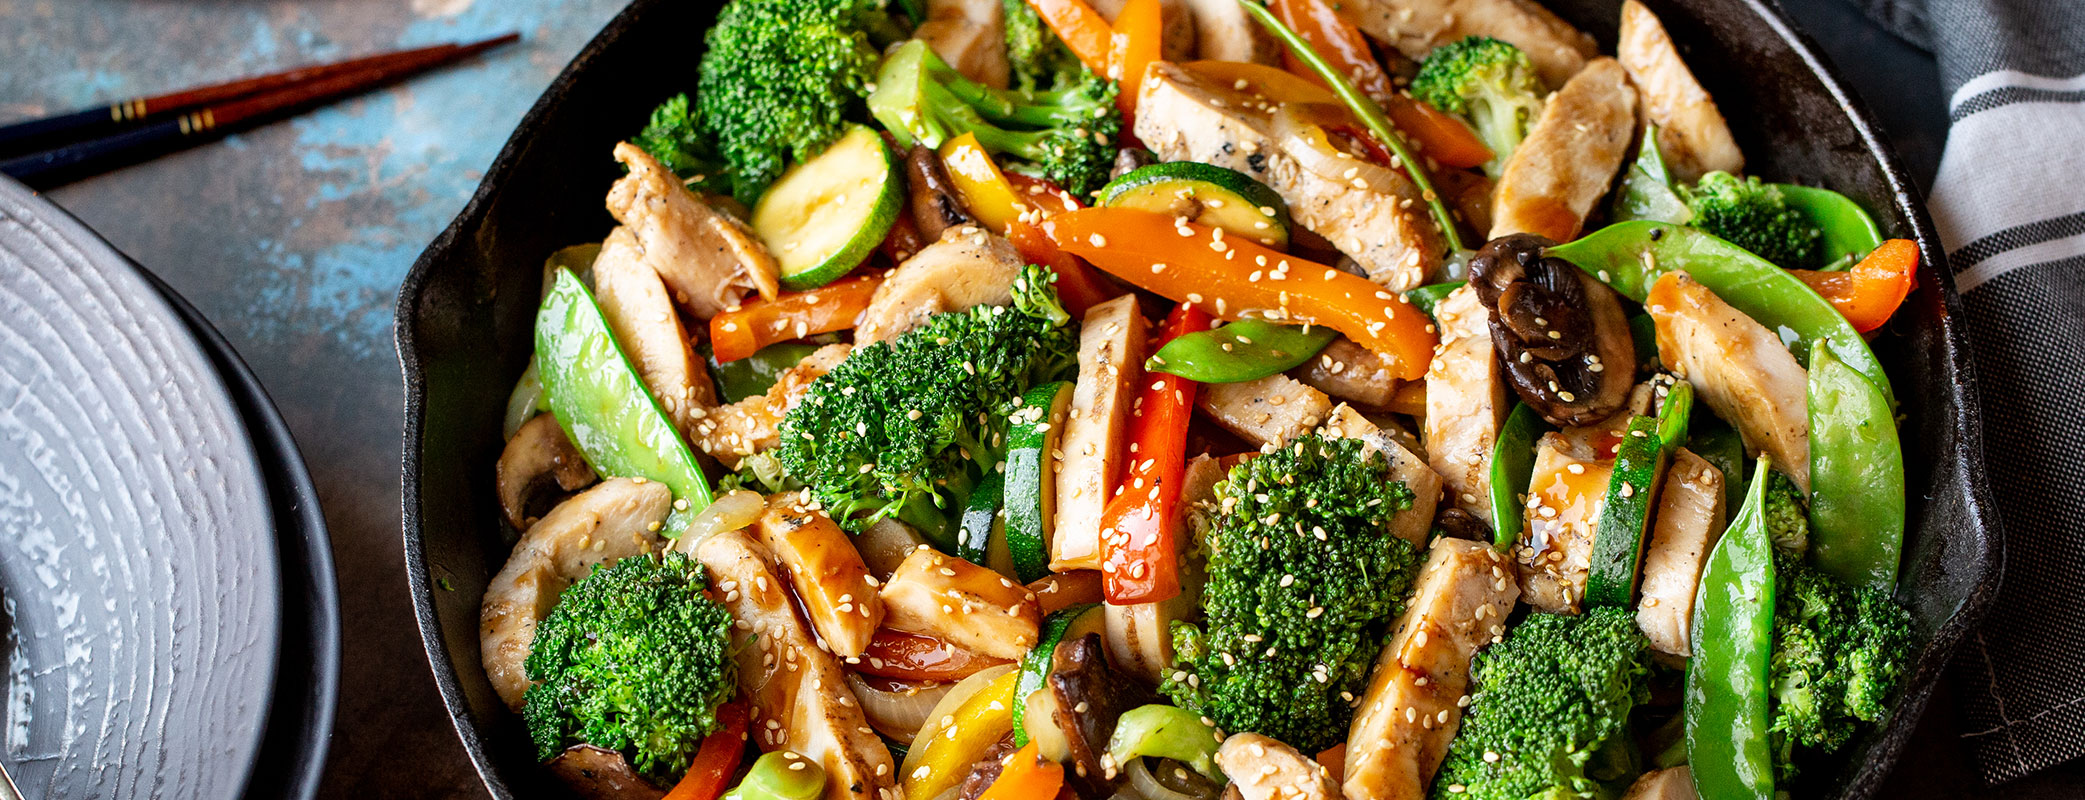 Honey Soy Chicken Stir Fry